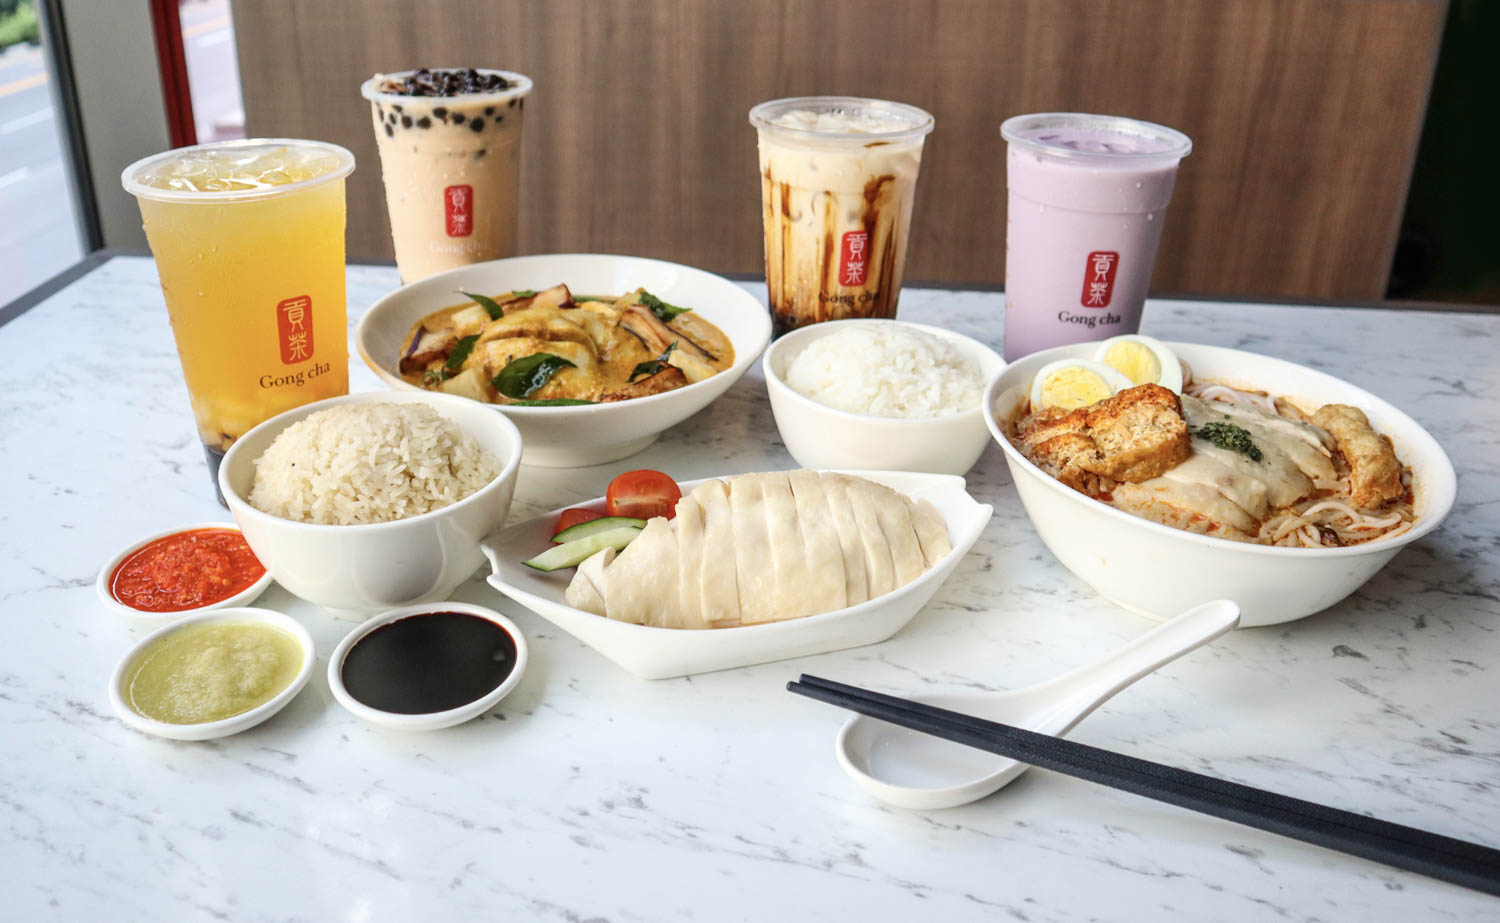 Gong Cha Delivery - Express by Chatterbox